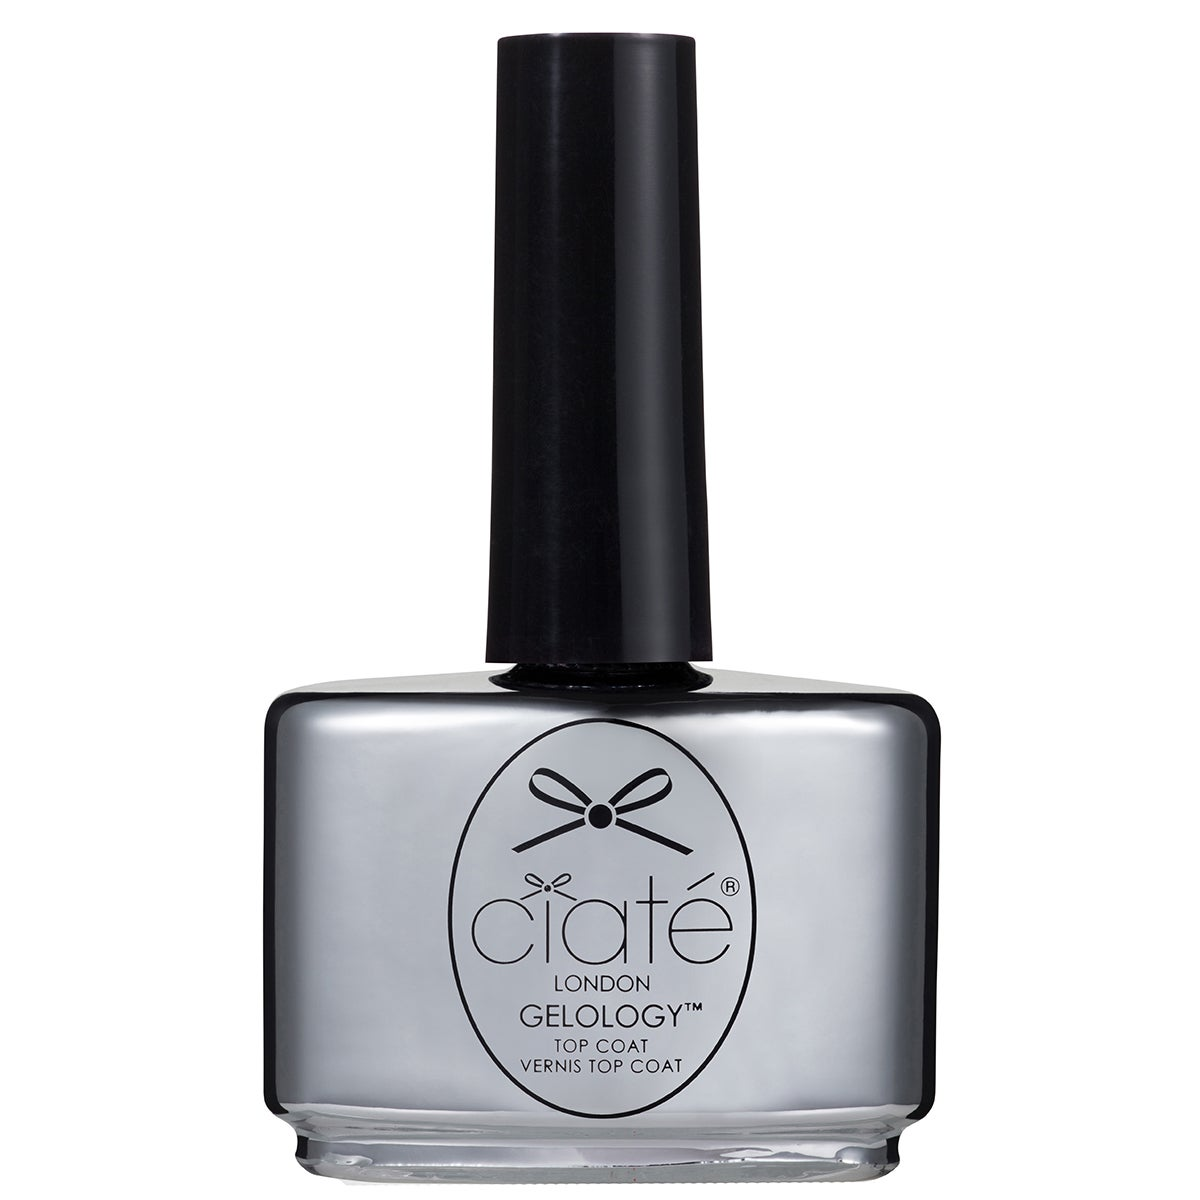 Ciaté Gelology Top Coat